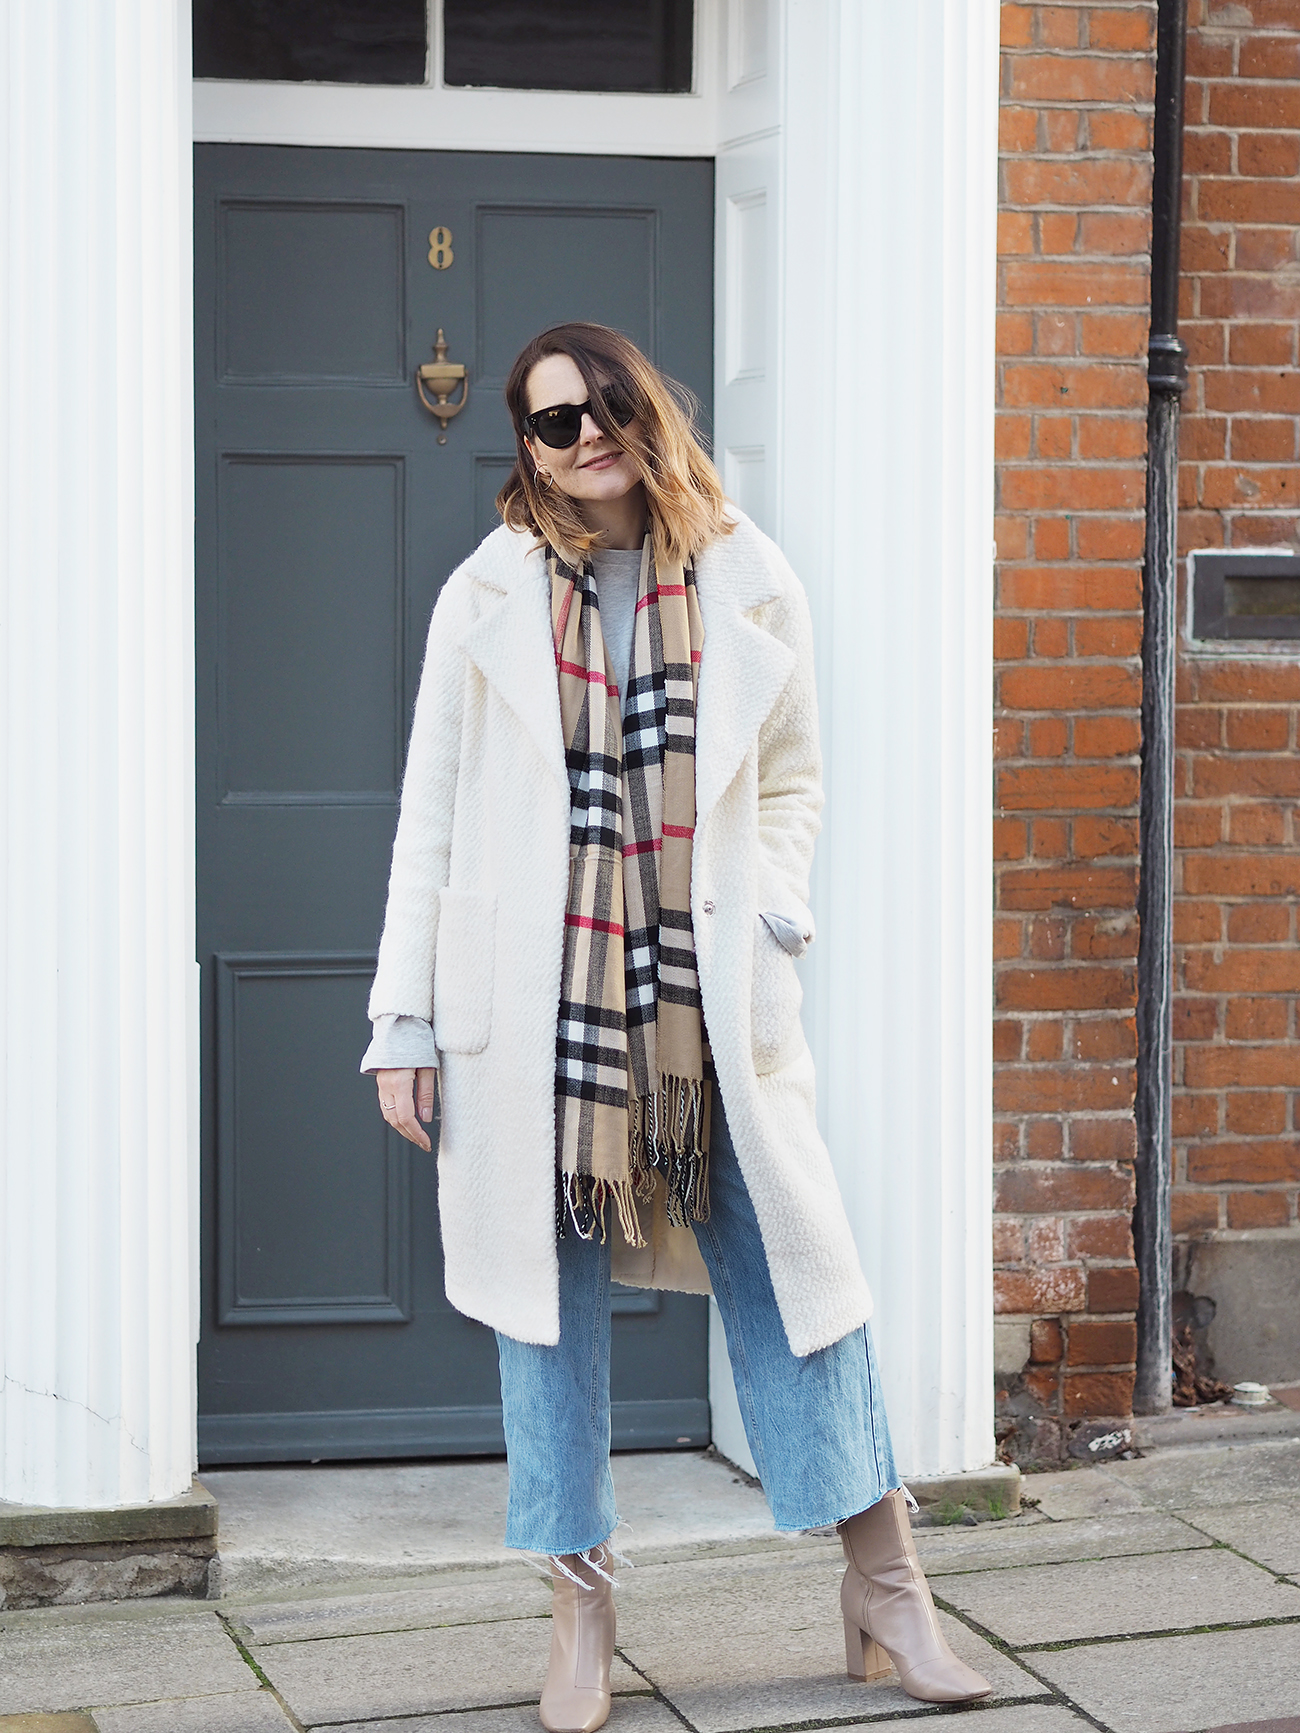 cream coat and Burberry check scarf outfit with jeans